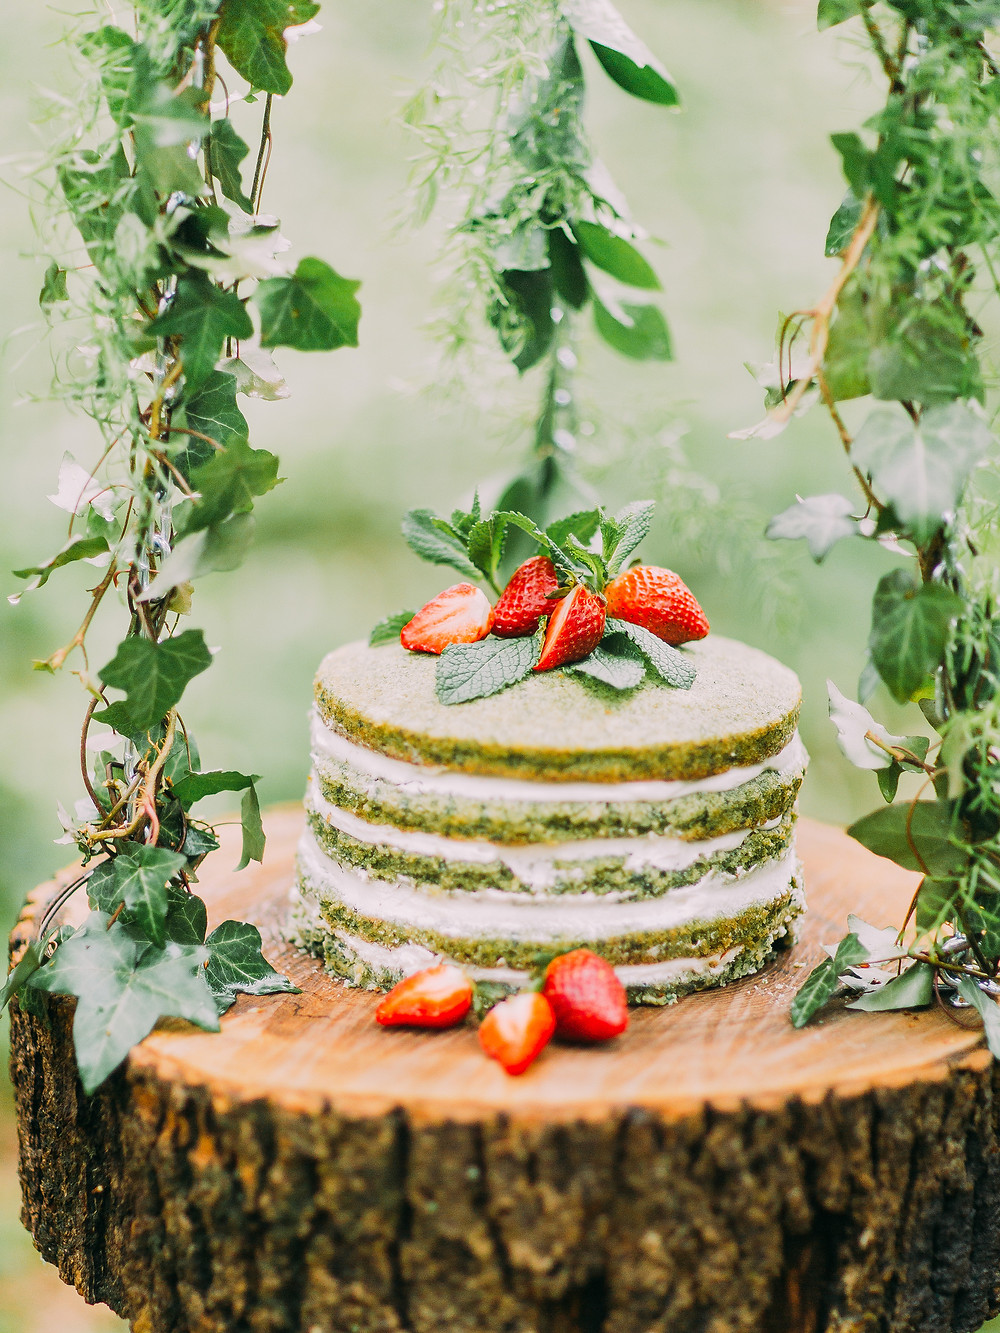 Country wedding cake with berries - Our Italian Fairytale